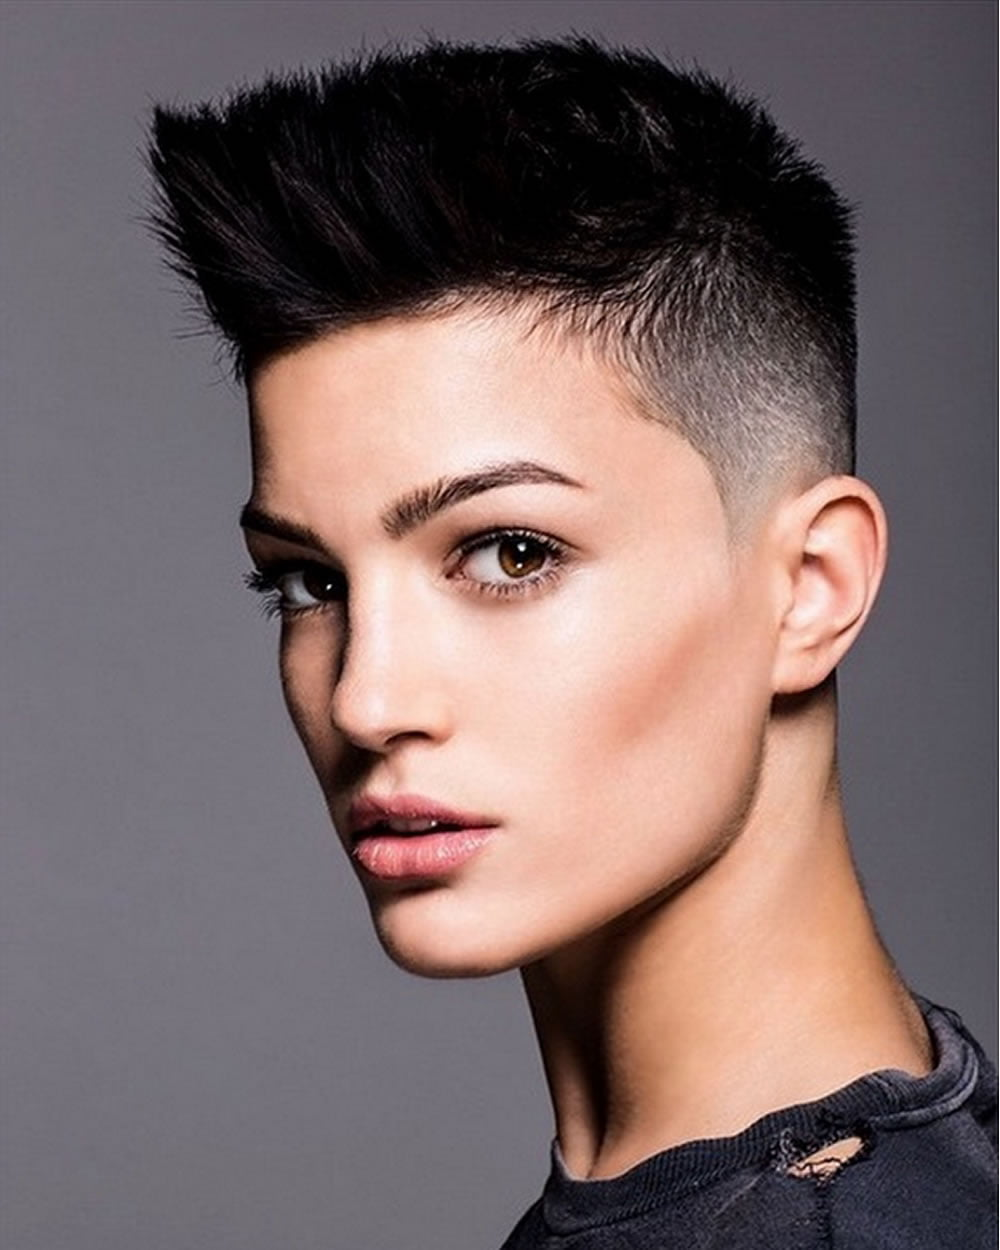 short pixie hairstyles trend hair colors for spring summer 2018 2019 page 7 hairstyles. Black Bedroom Furniture Sets. Home Design Ideas